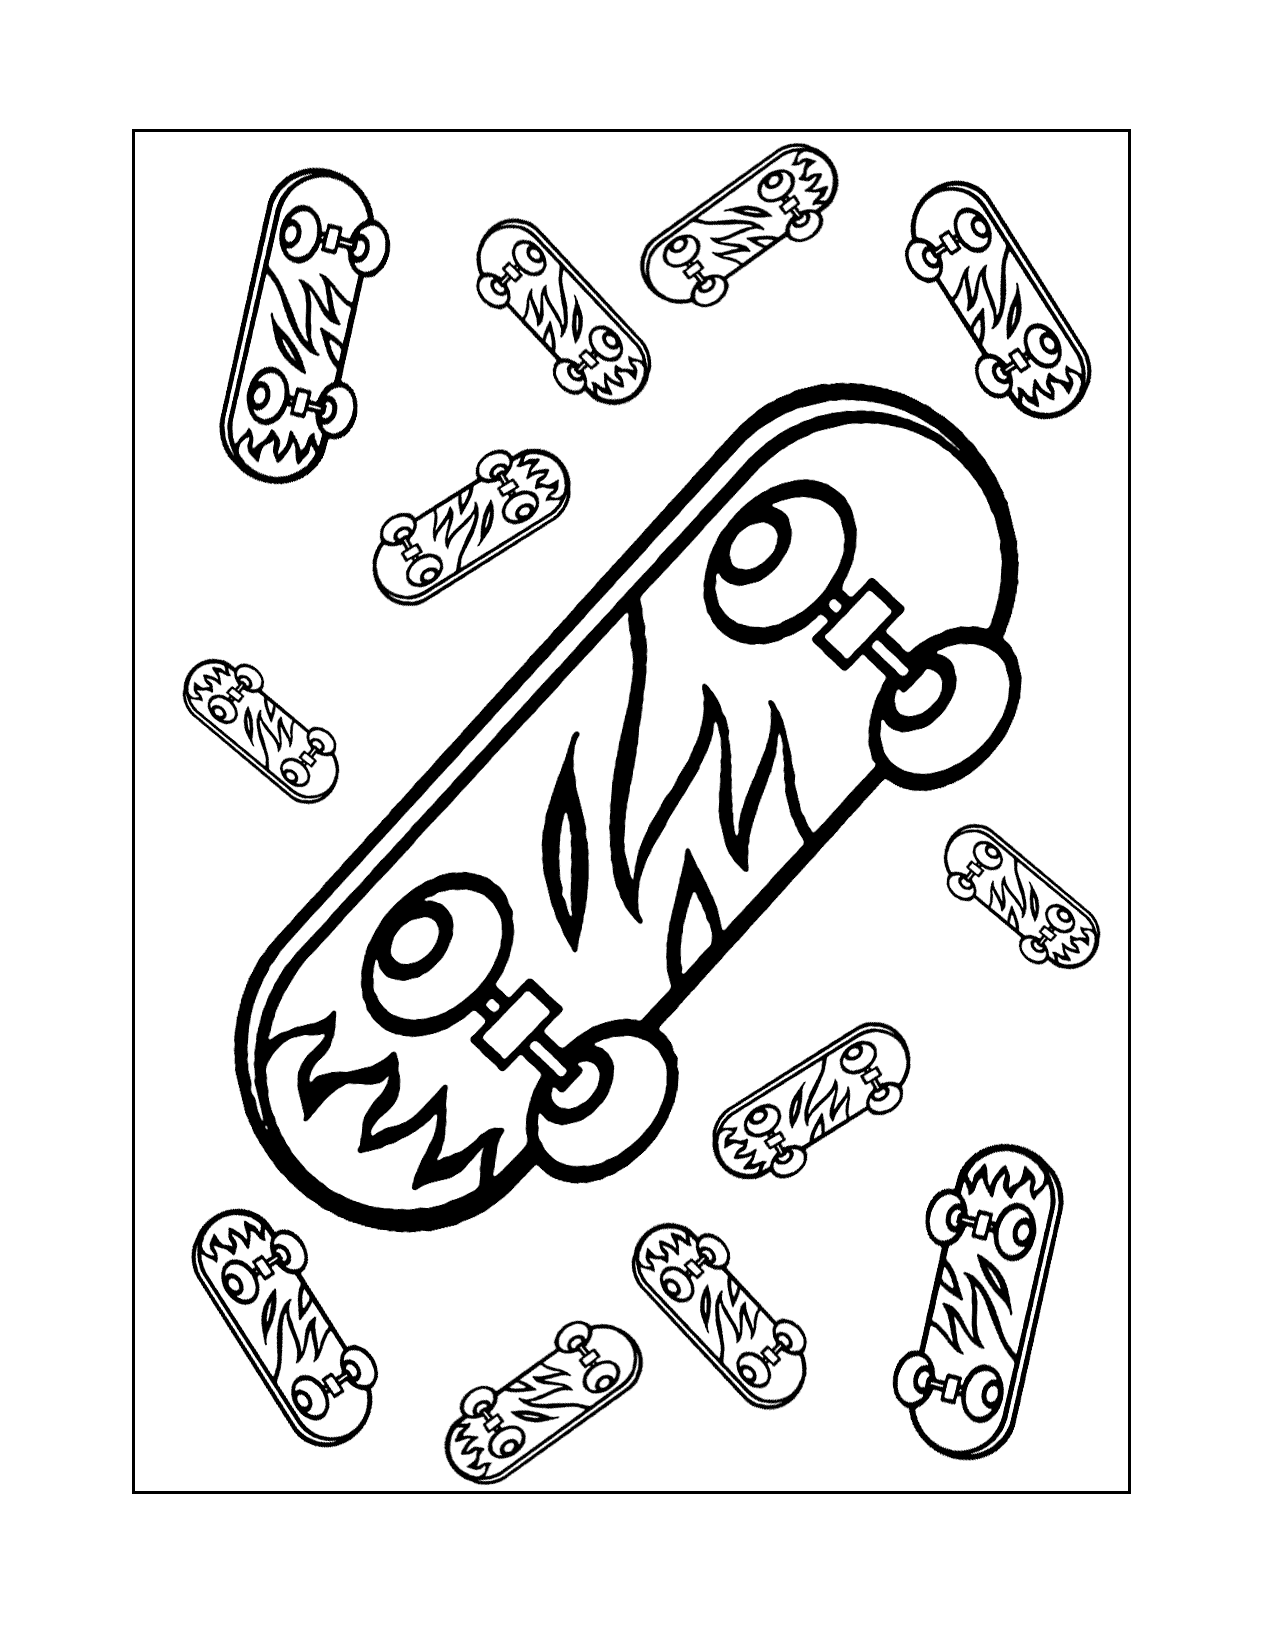 Skateboard With Flames Coloring Page